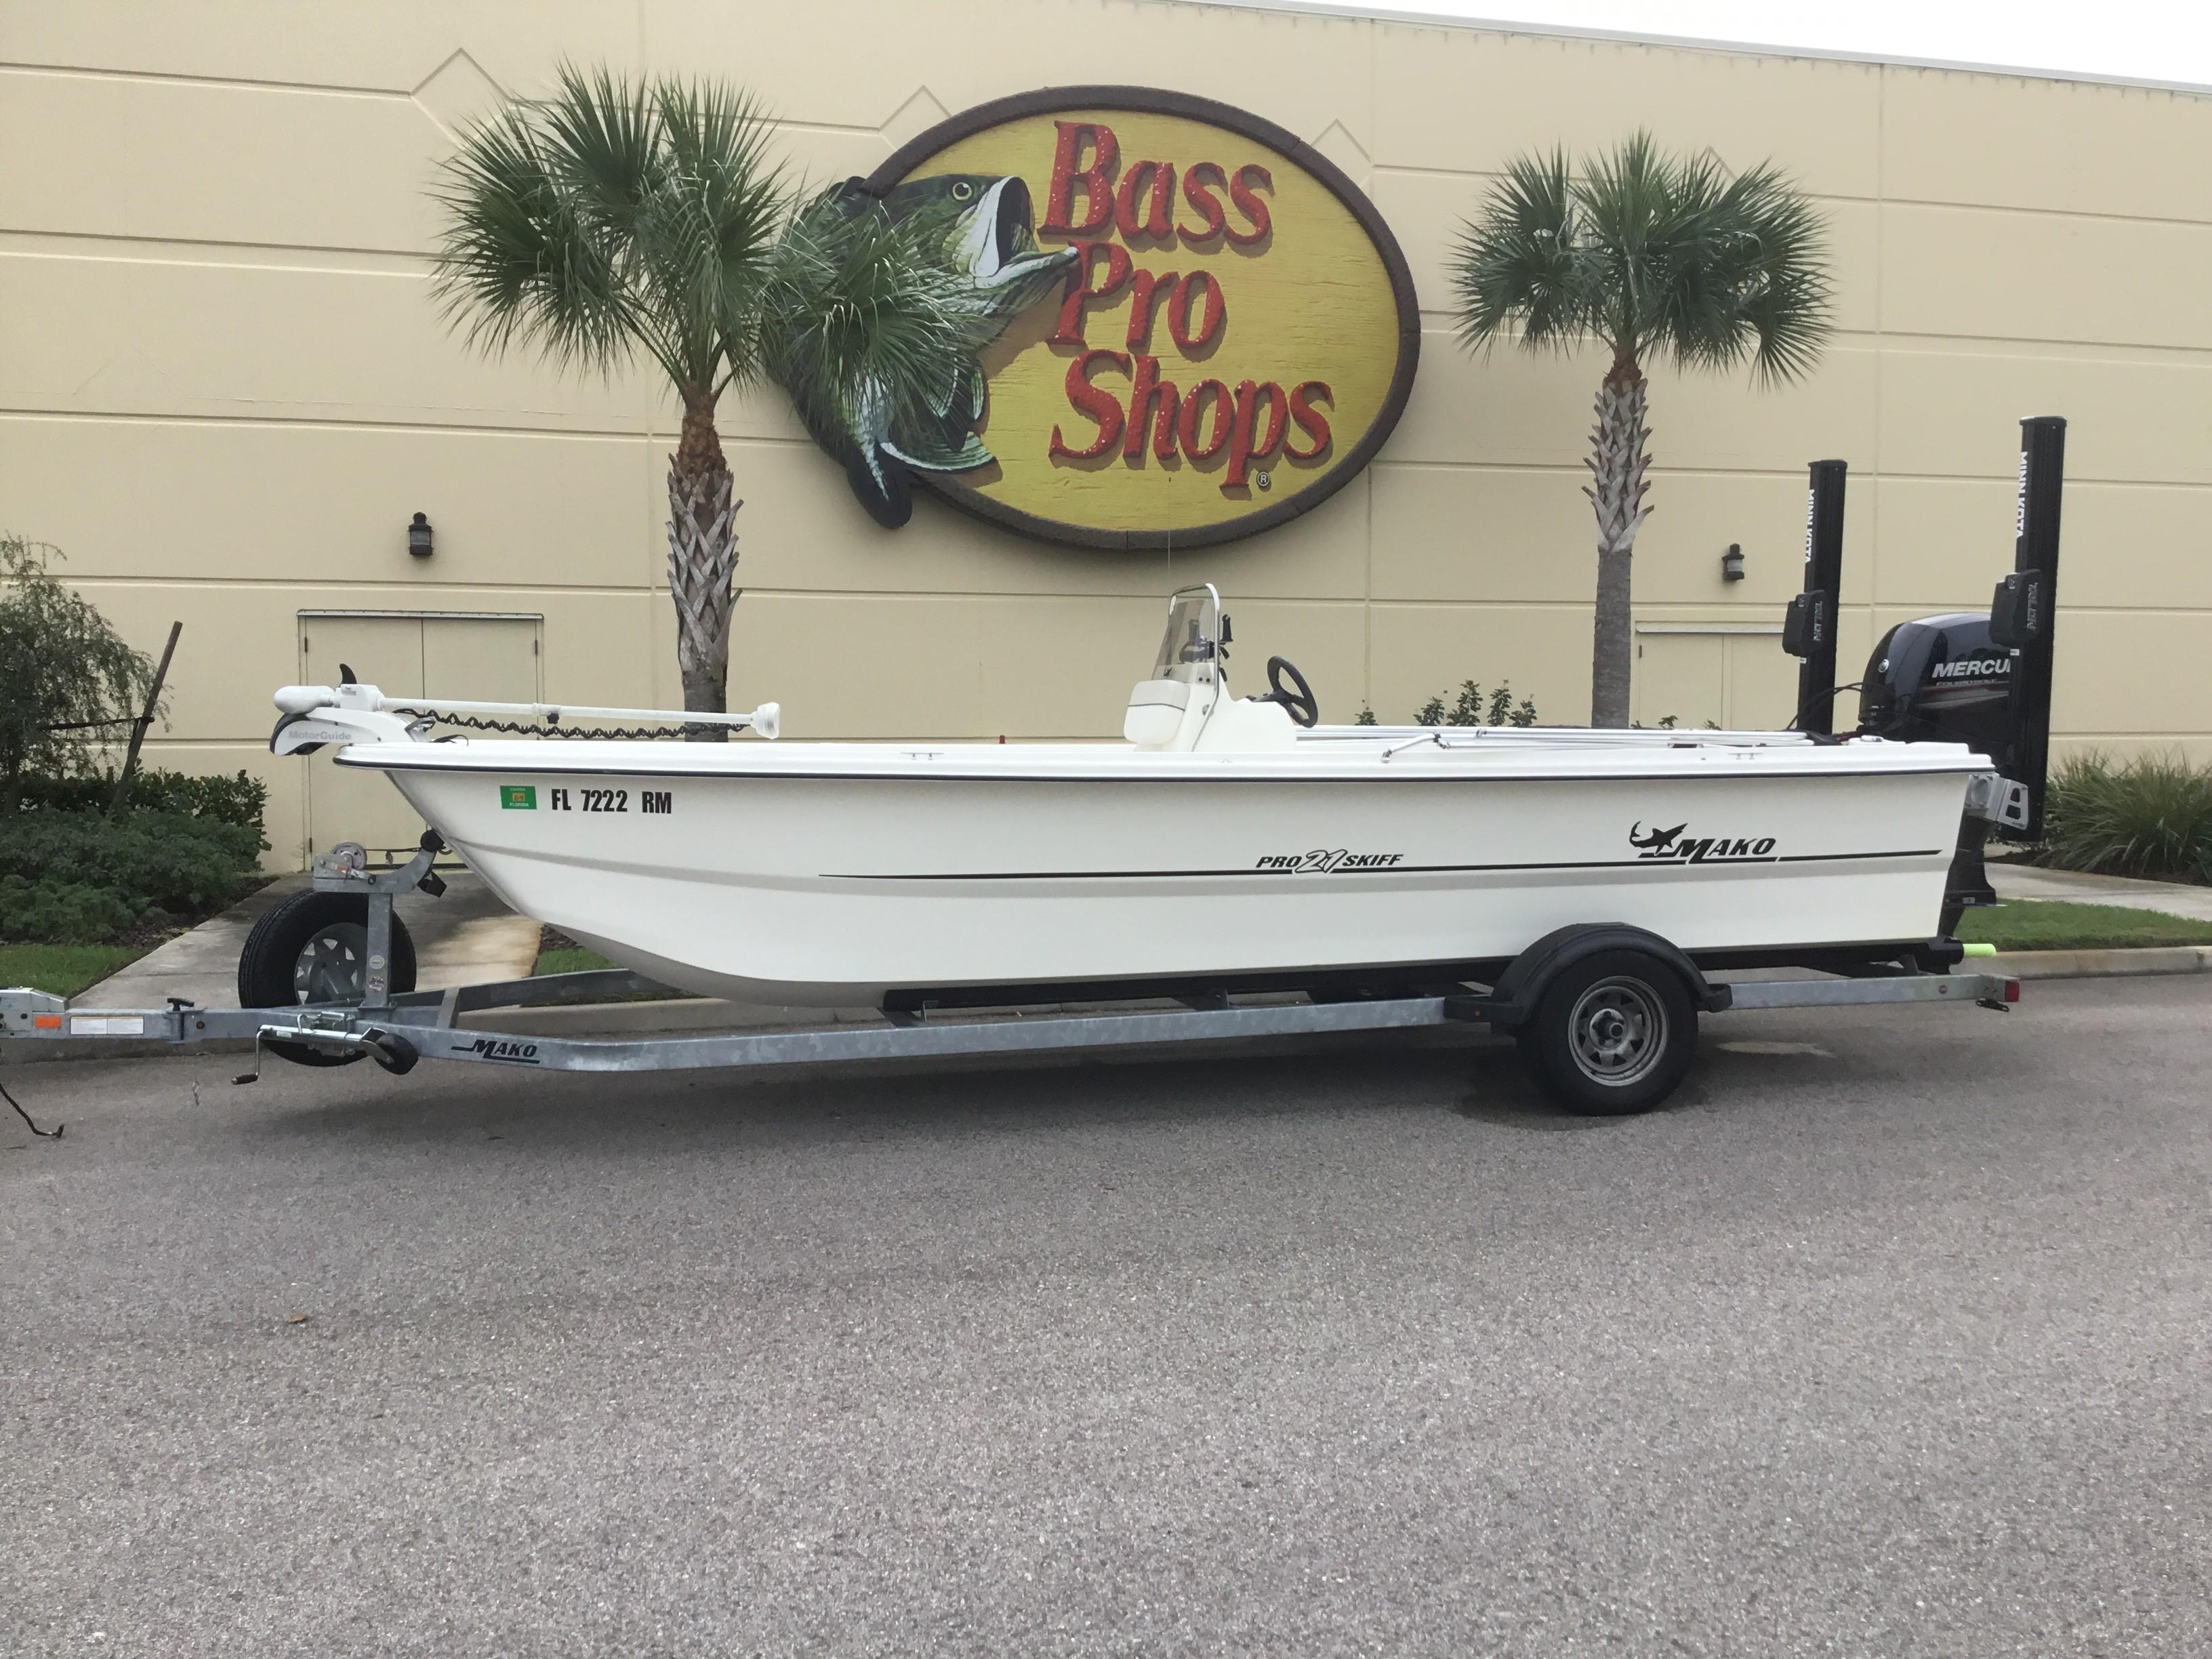 Boat Inventory - Port St. Lucie, FL Bass Pro Shops Tracker Boat ...